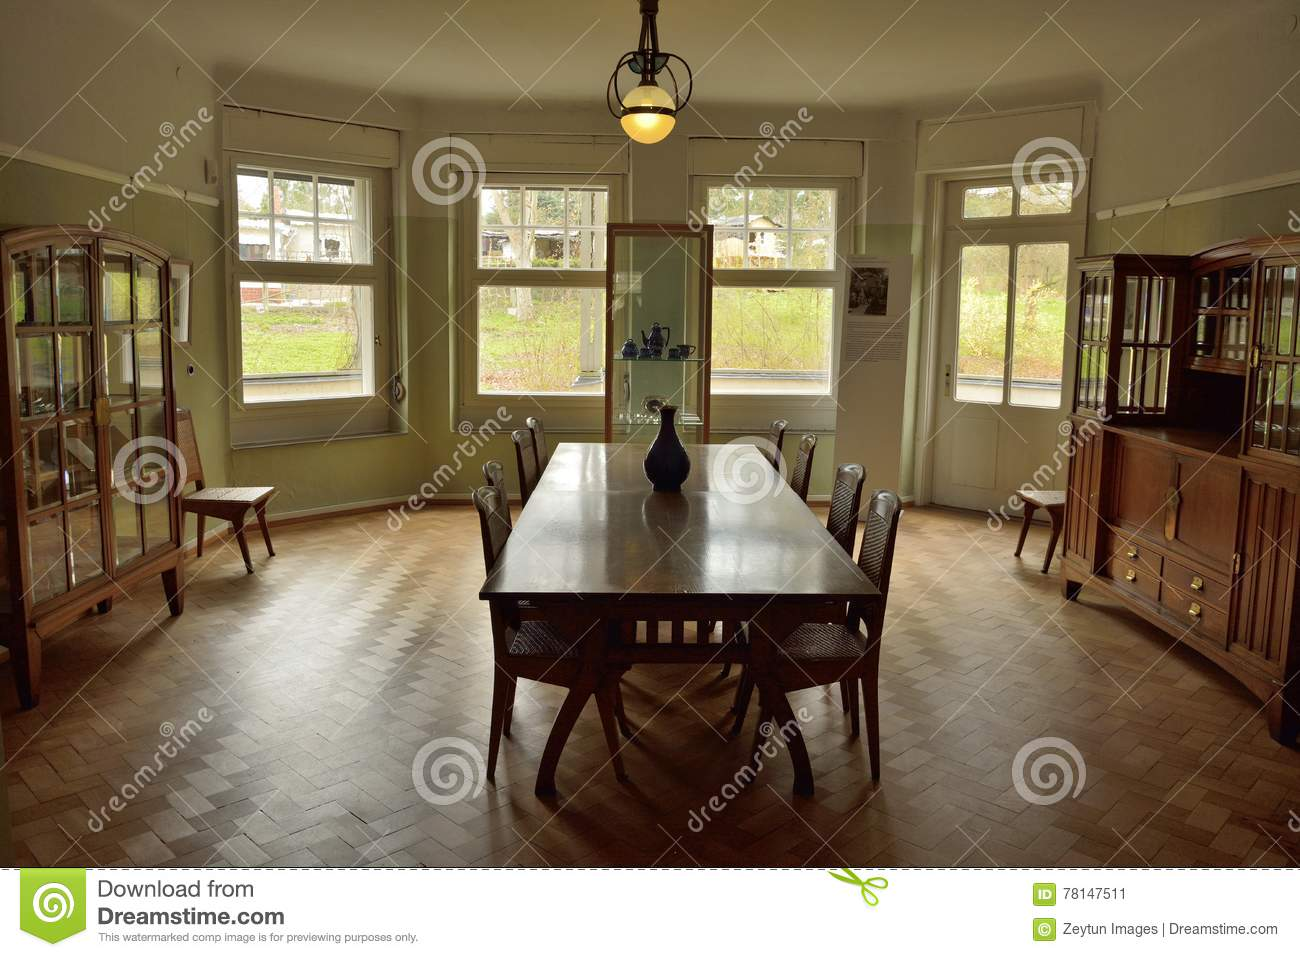 Haus Designer View Of Dining Room At Haus Hohe Pappeln Historic Building In Weimar Editorial Photo - Image Of Historic, Building: 78147511